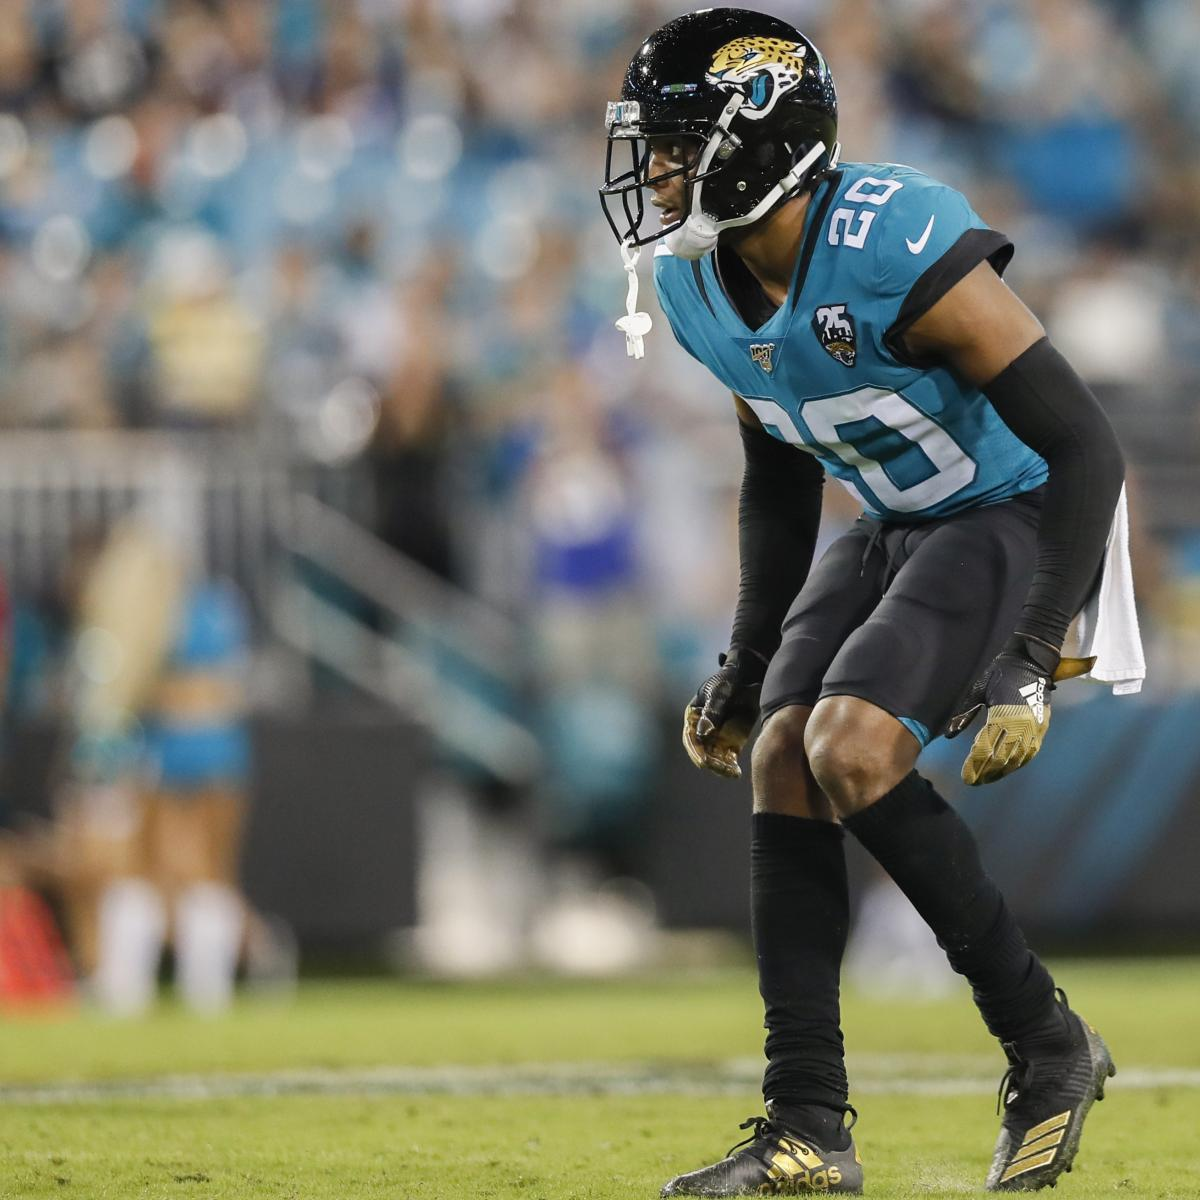 Jaguars CB Jalen Ramsey Traded to Rams for 2 1st-Round Draft Picks, More